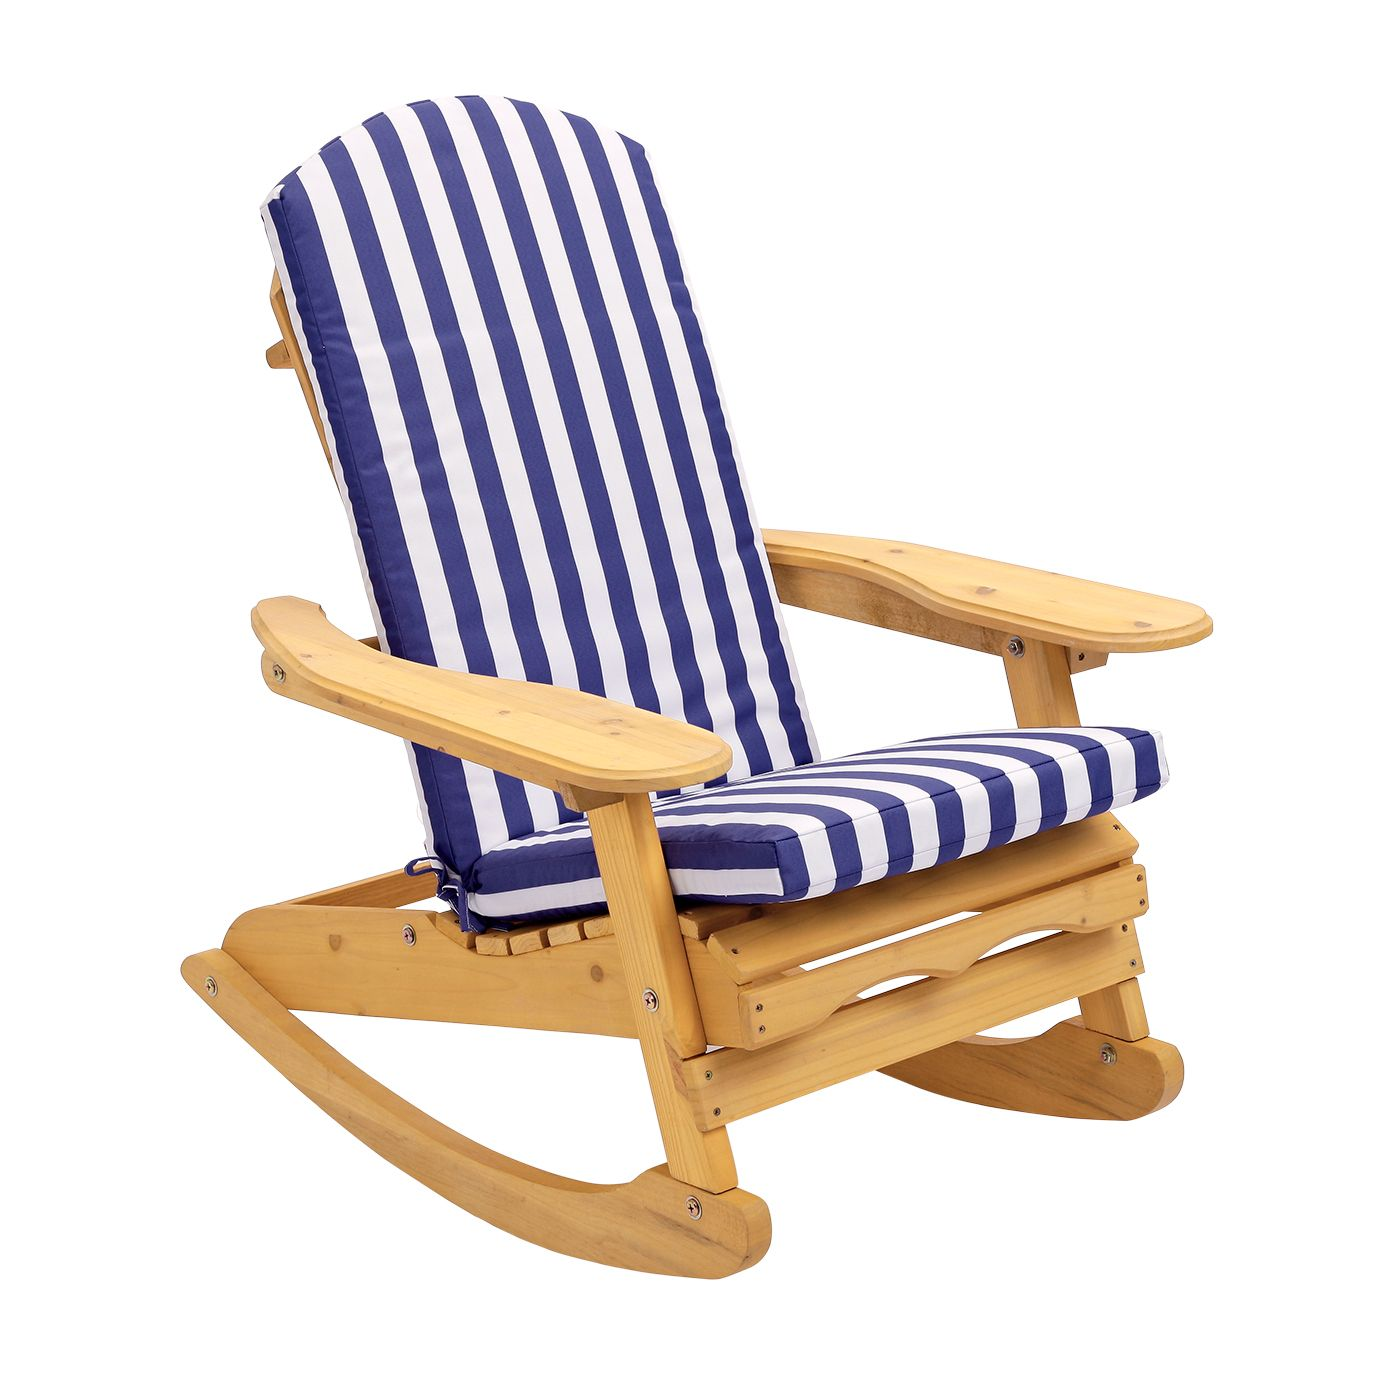 Garden patio rocking chair with blue white striped